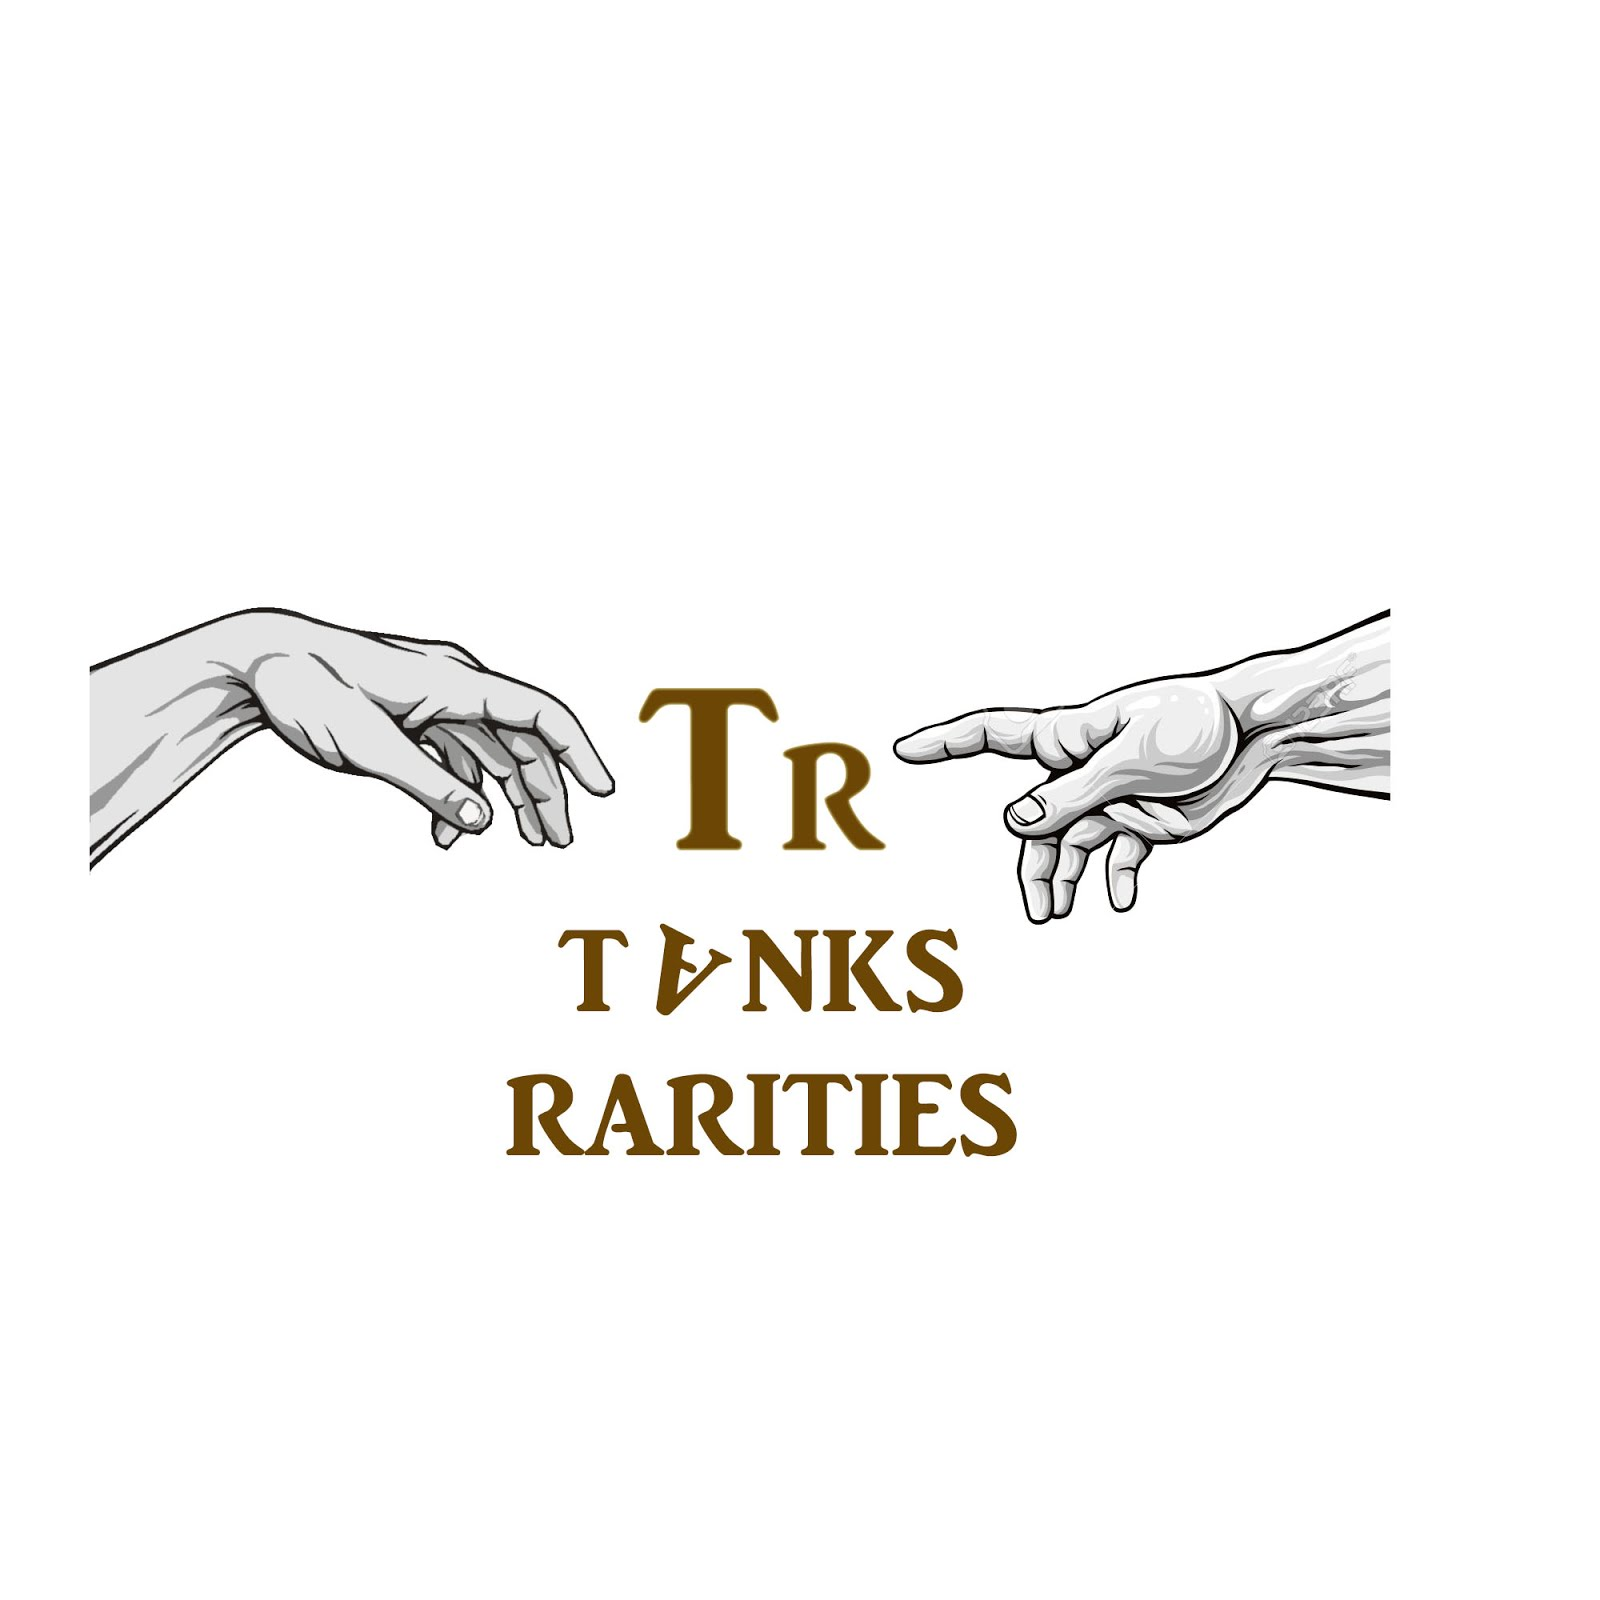 Tanks Rarities